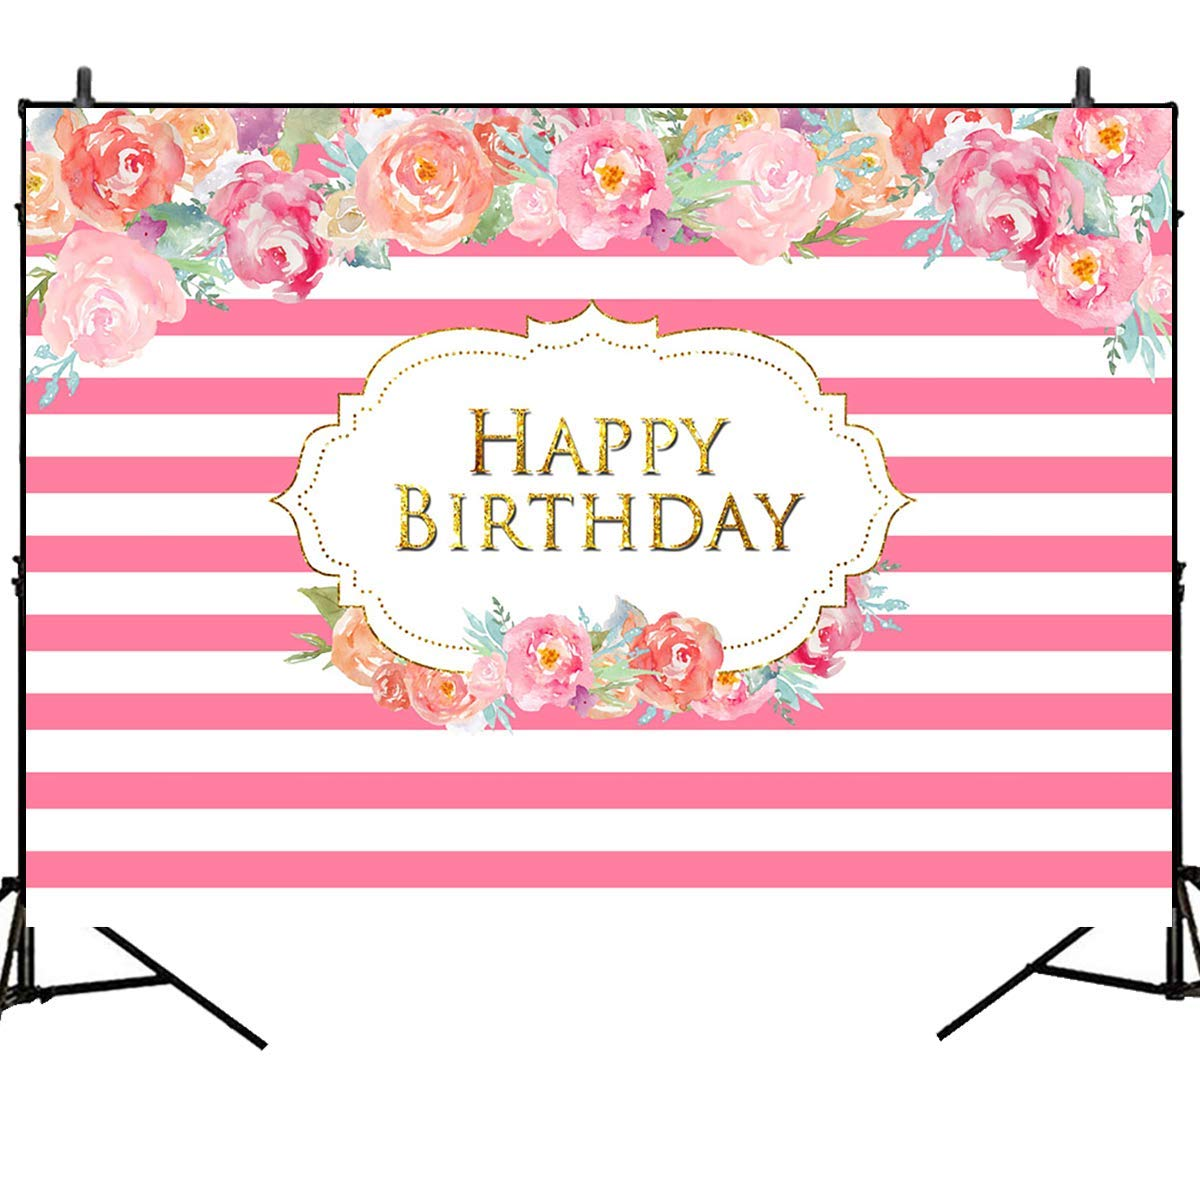 Mehofoto Pink White Stripes Backdrop Flower Happy Birthday Background 7x5ft Birthday Party Photography Background for Children Kid Adult Birthday Party